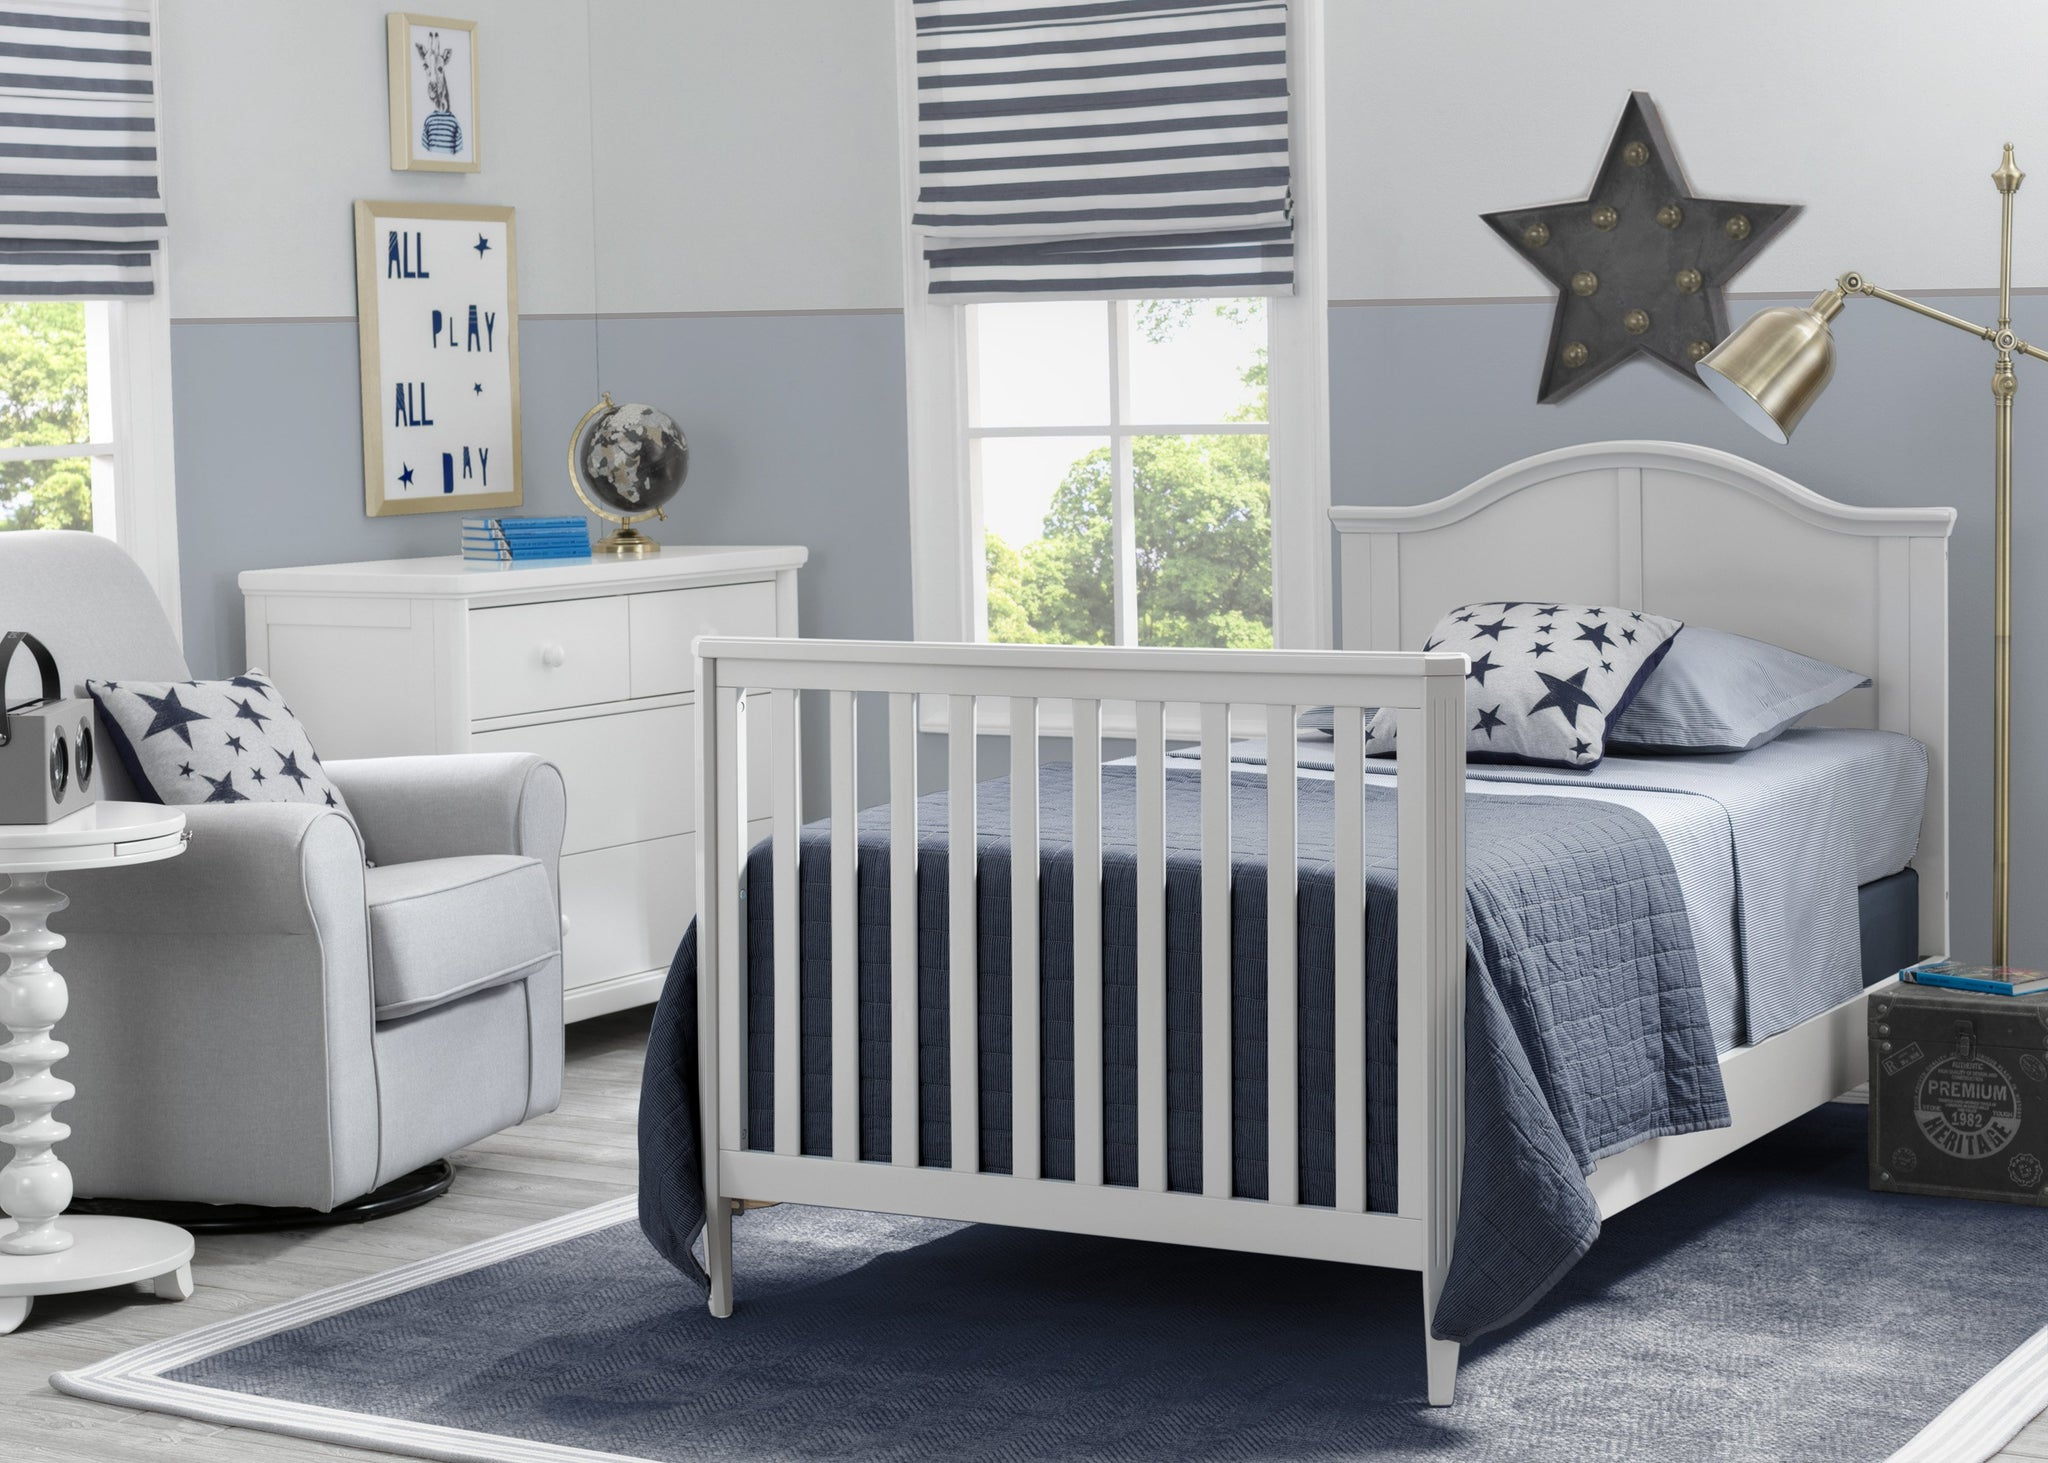 Delta Children Bianca White (130) Mini Convertible Baby Crib with Mattress and 2 Sheets Twin Bed Room View